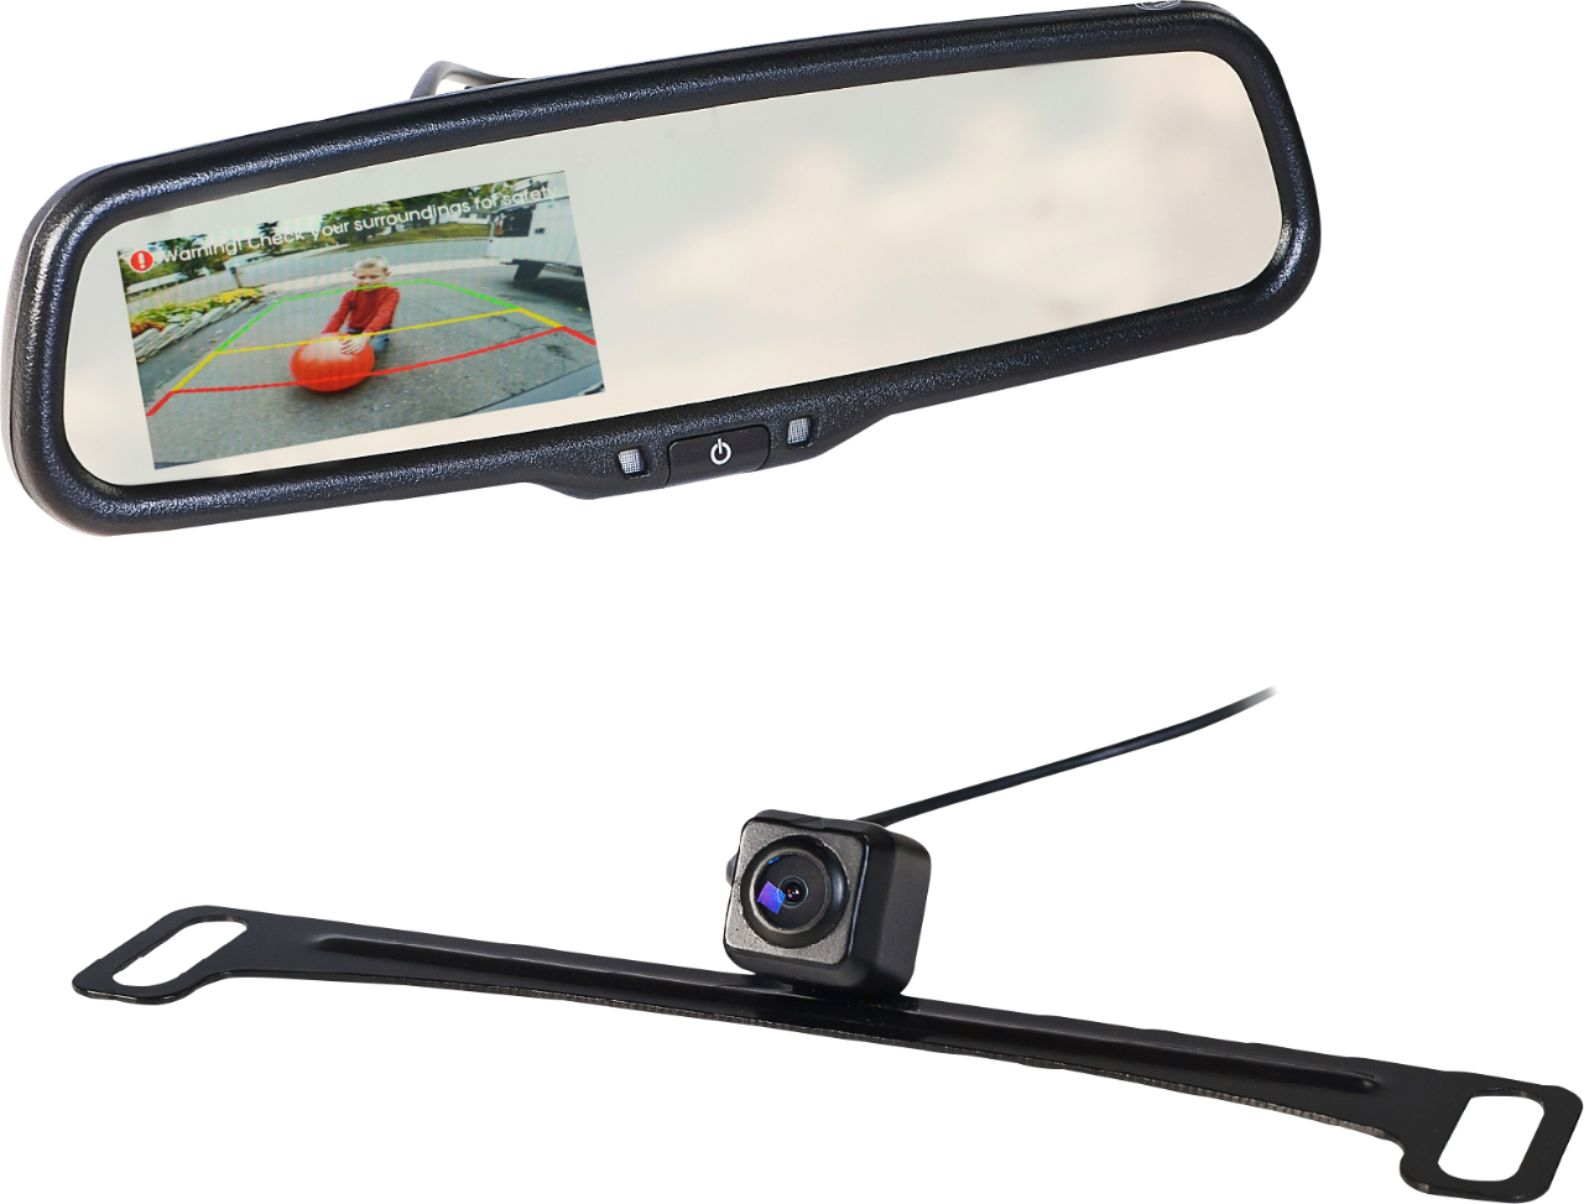 hight resolution of echomaster rear view mirror back up camera kit black mrc lp01cp best buy